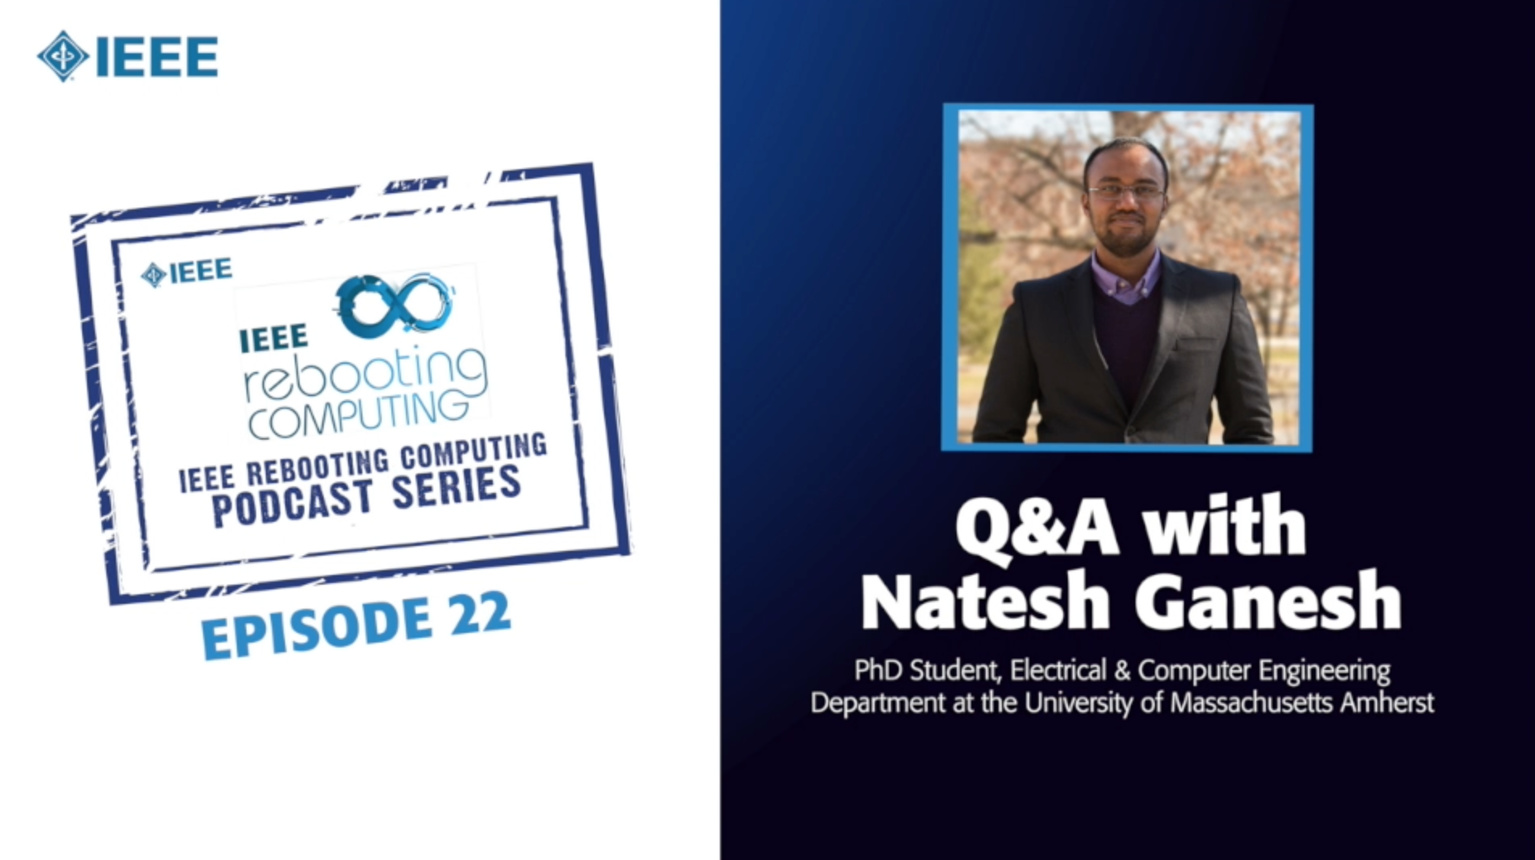 Q&A with Natesh Ganesh: IEEE Rebooting Computing Podcast, Episode 22